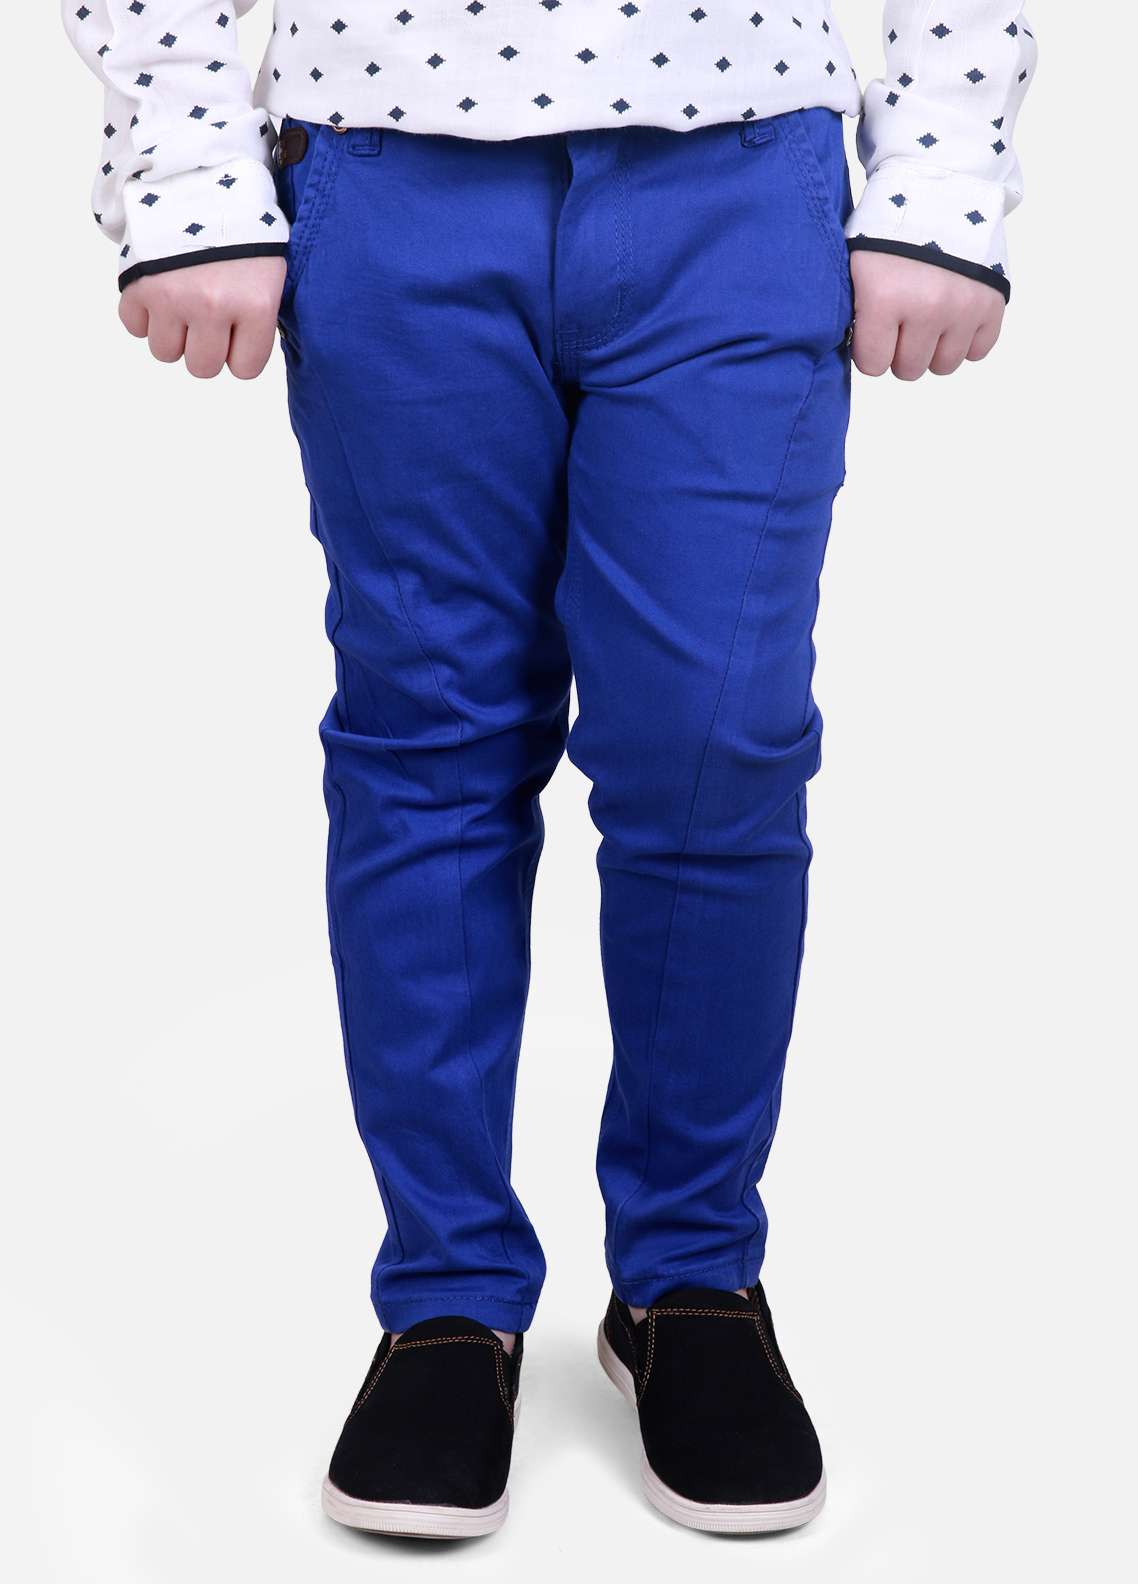 Edenrobe Cotton Plain Texture Boys Pants - Royal Blue EDK18P 24053